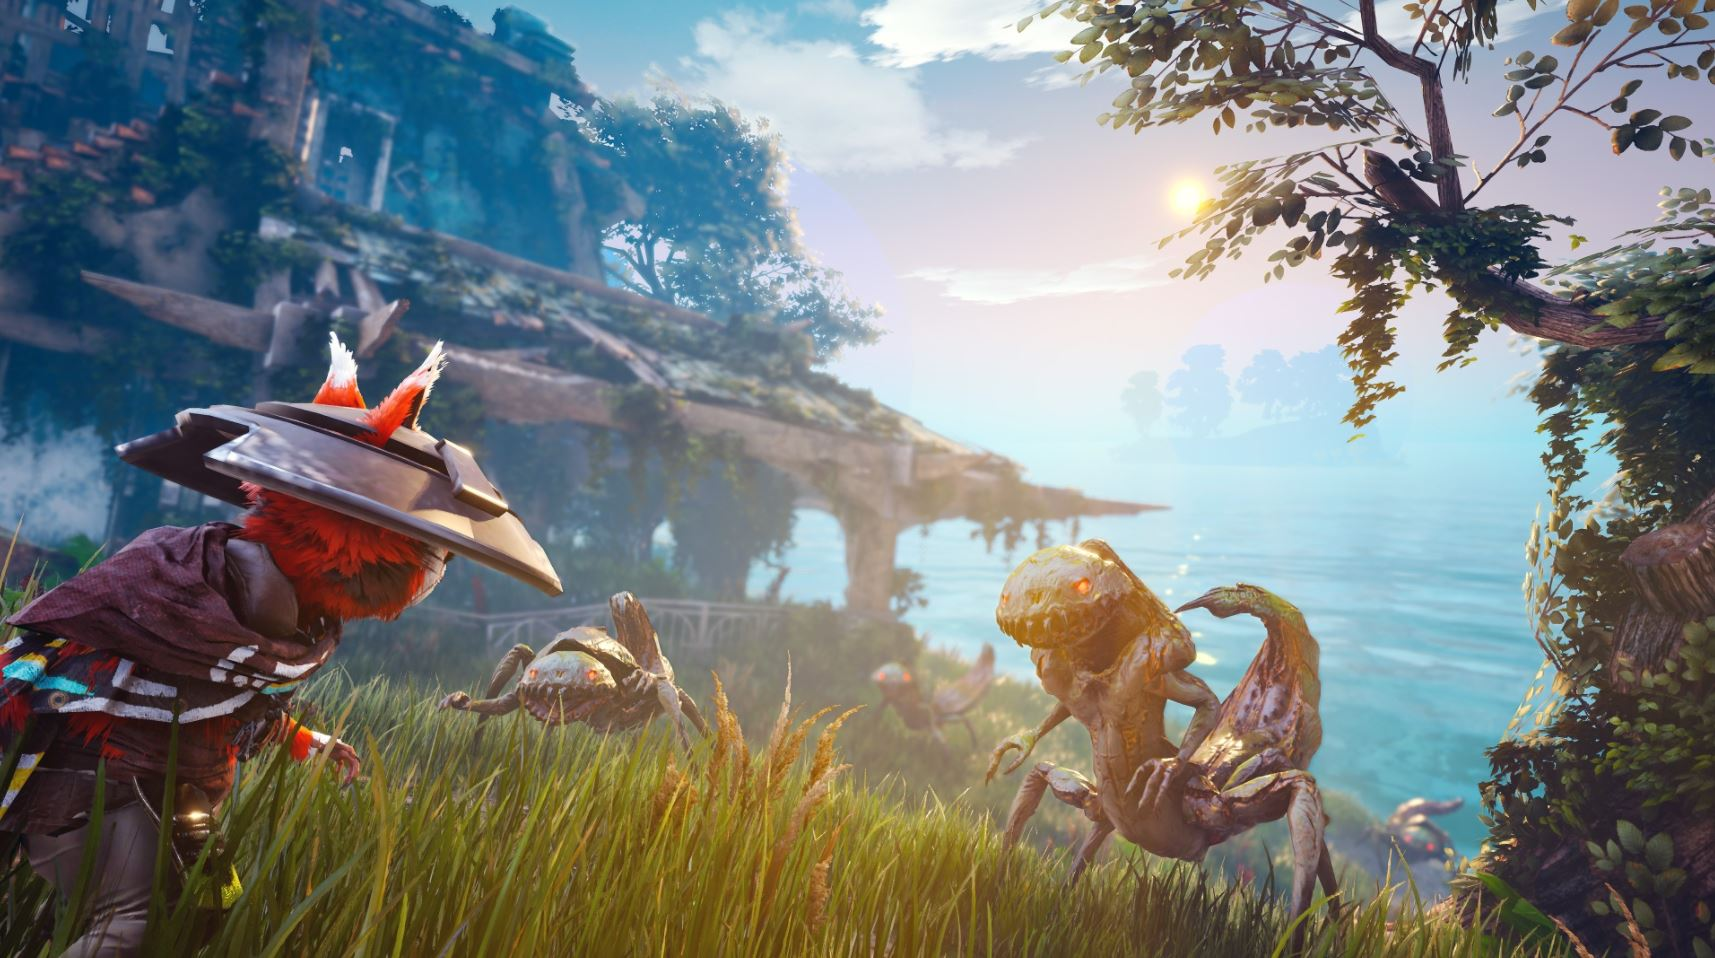 biomutant-ps5-performance-revealed-in-new-gameplay-ahead-of-release-native-ps5-version